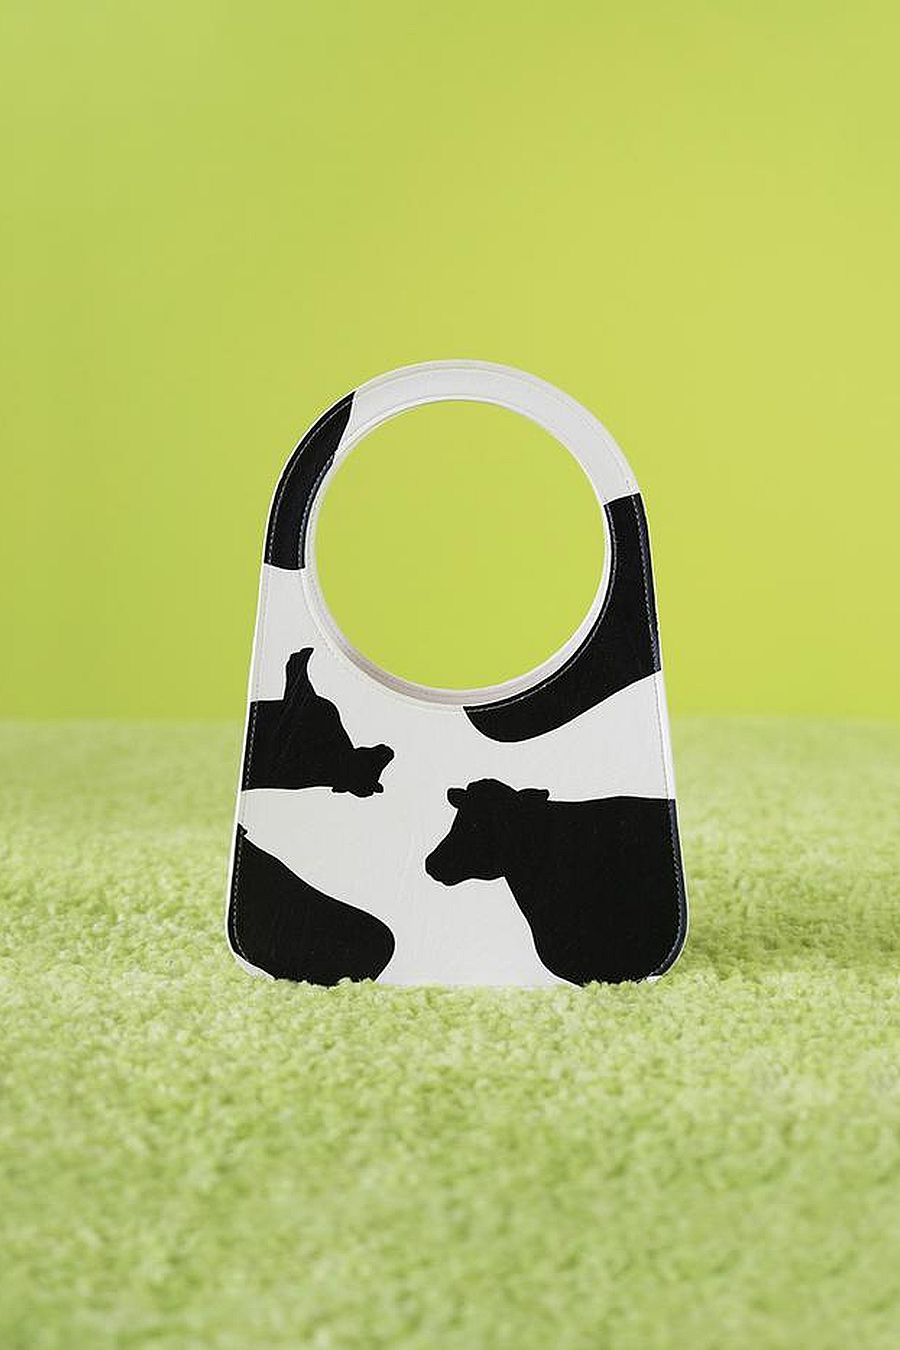 Boobie World Boobie Bag - Cow Cow